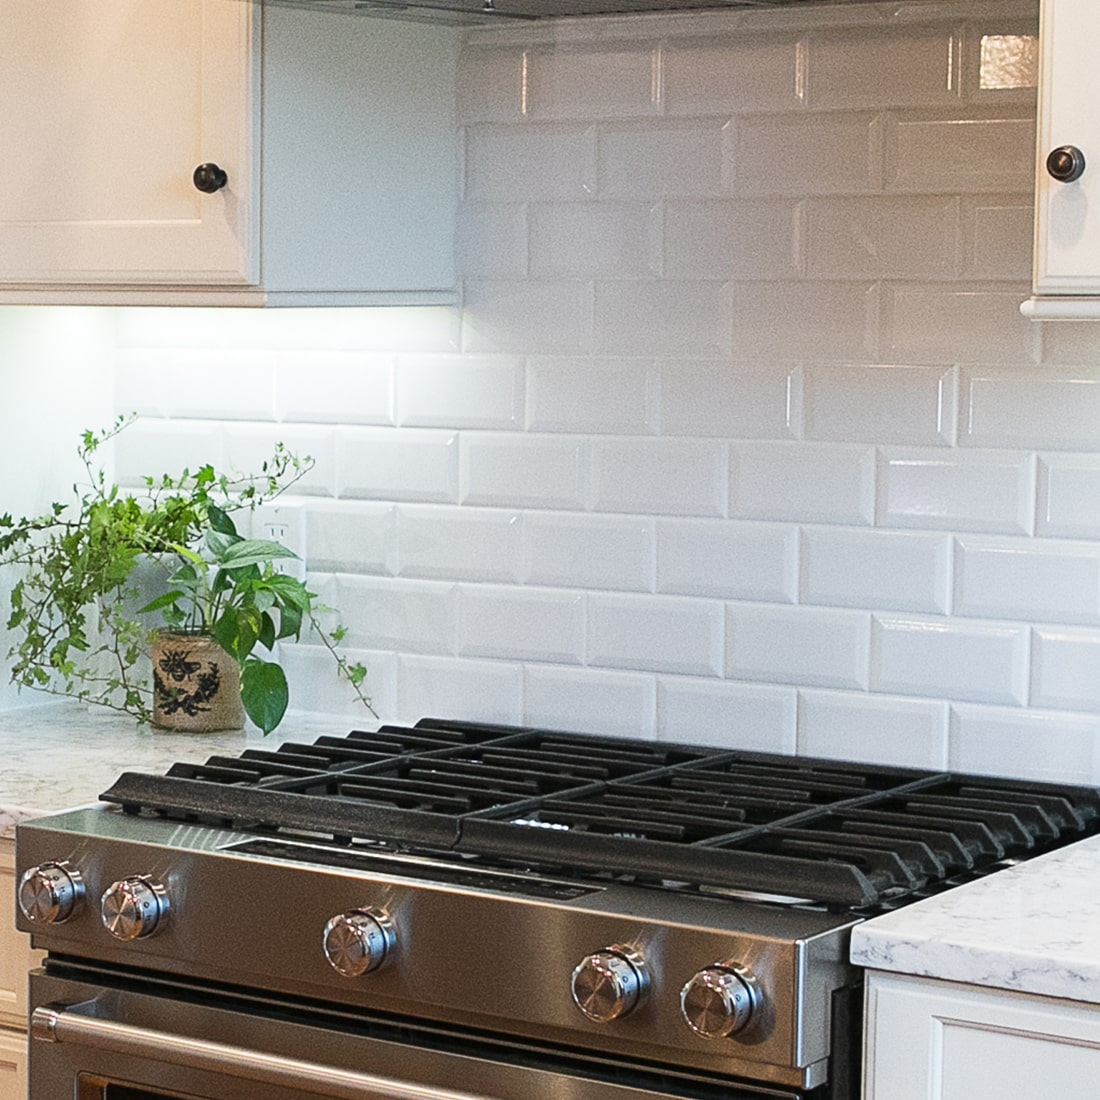 detail of modern stove range with white subway tile.